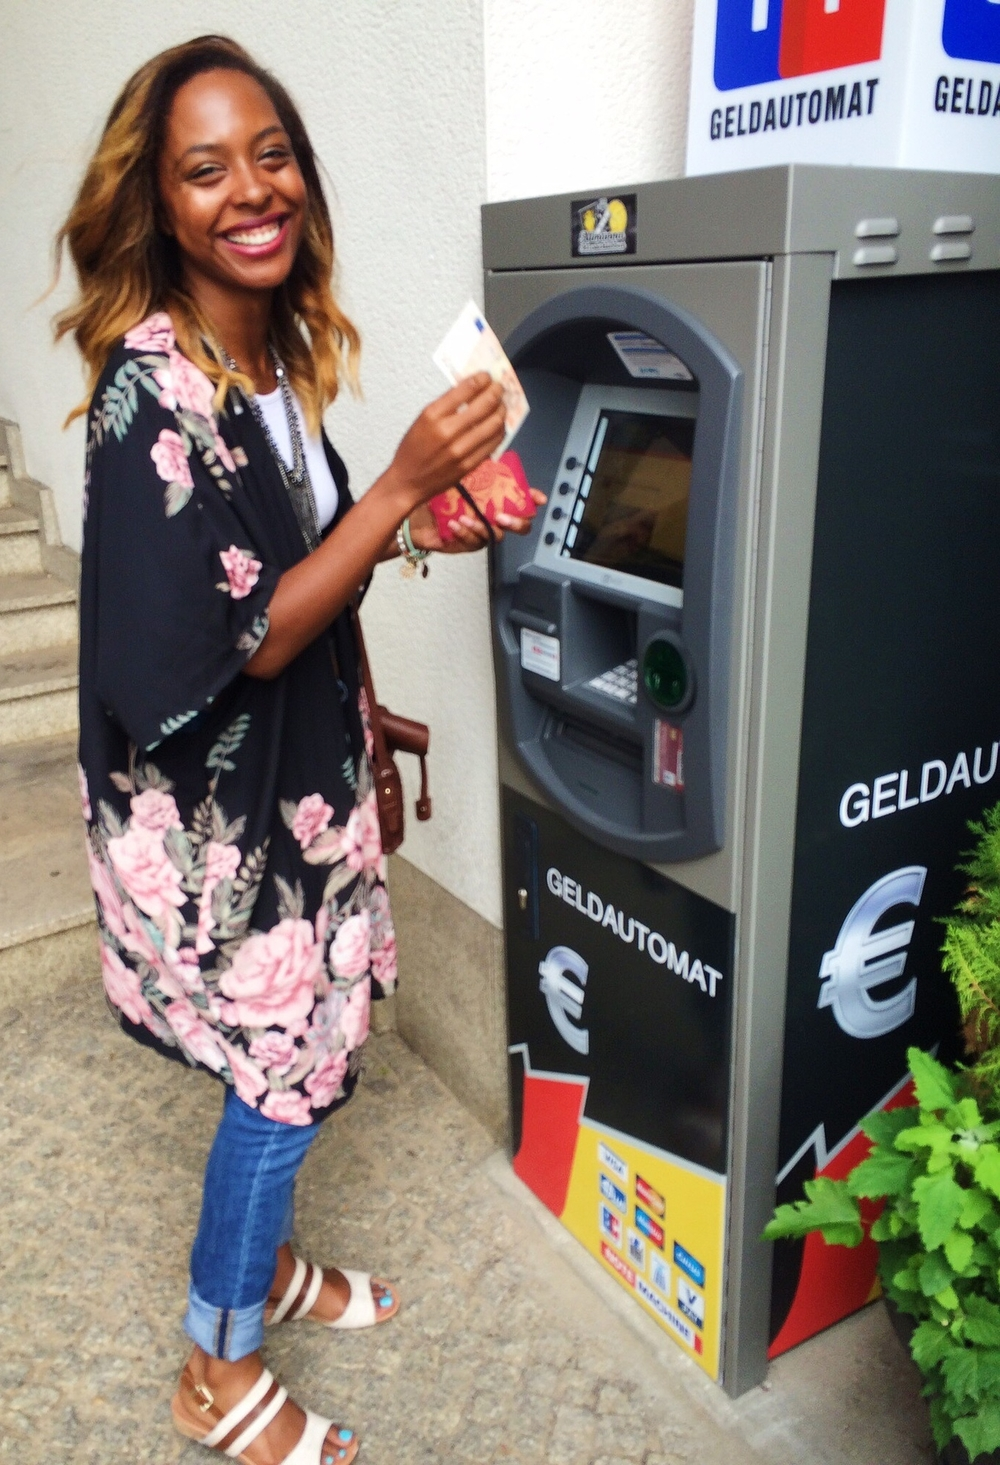 The happy moment when Capital One decided to let me be great and withdraw my money in Berlin. I attempted to withdraw money at 5 other ATMs before this beauty blessed me with Euros! #bbhmm Pro Tip: When abroad try to withdraw money from ATMs connected with a bank. They will give you less trouble.